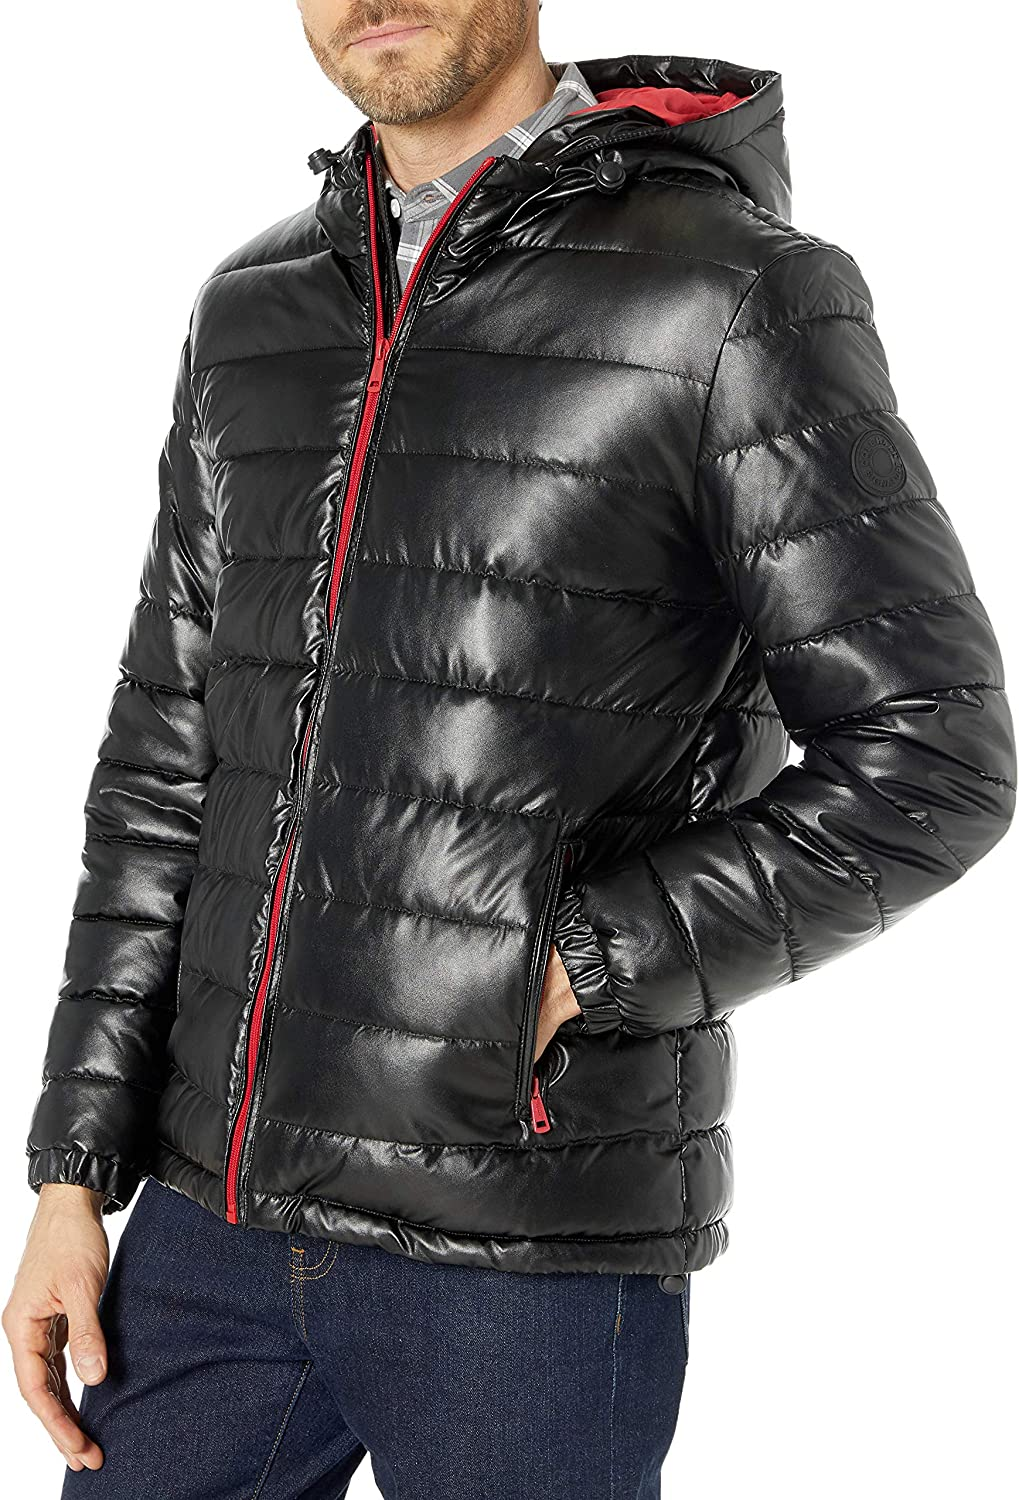 Cole Haan Signature Men's Hooded Faux Leather Jacket